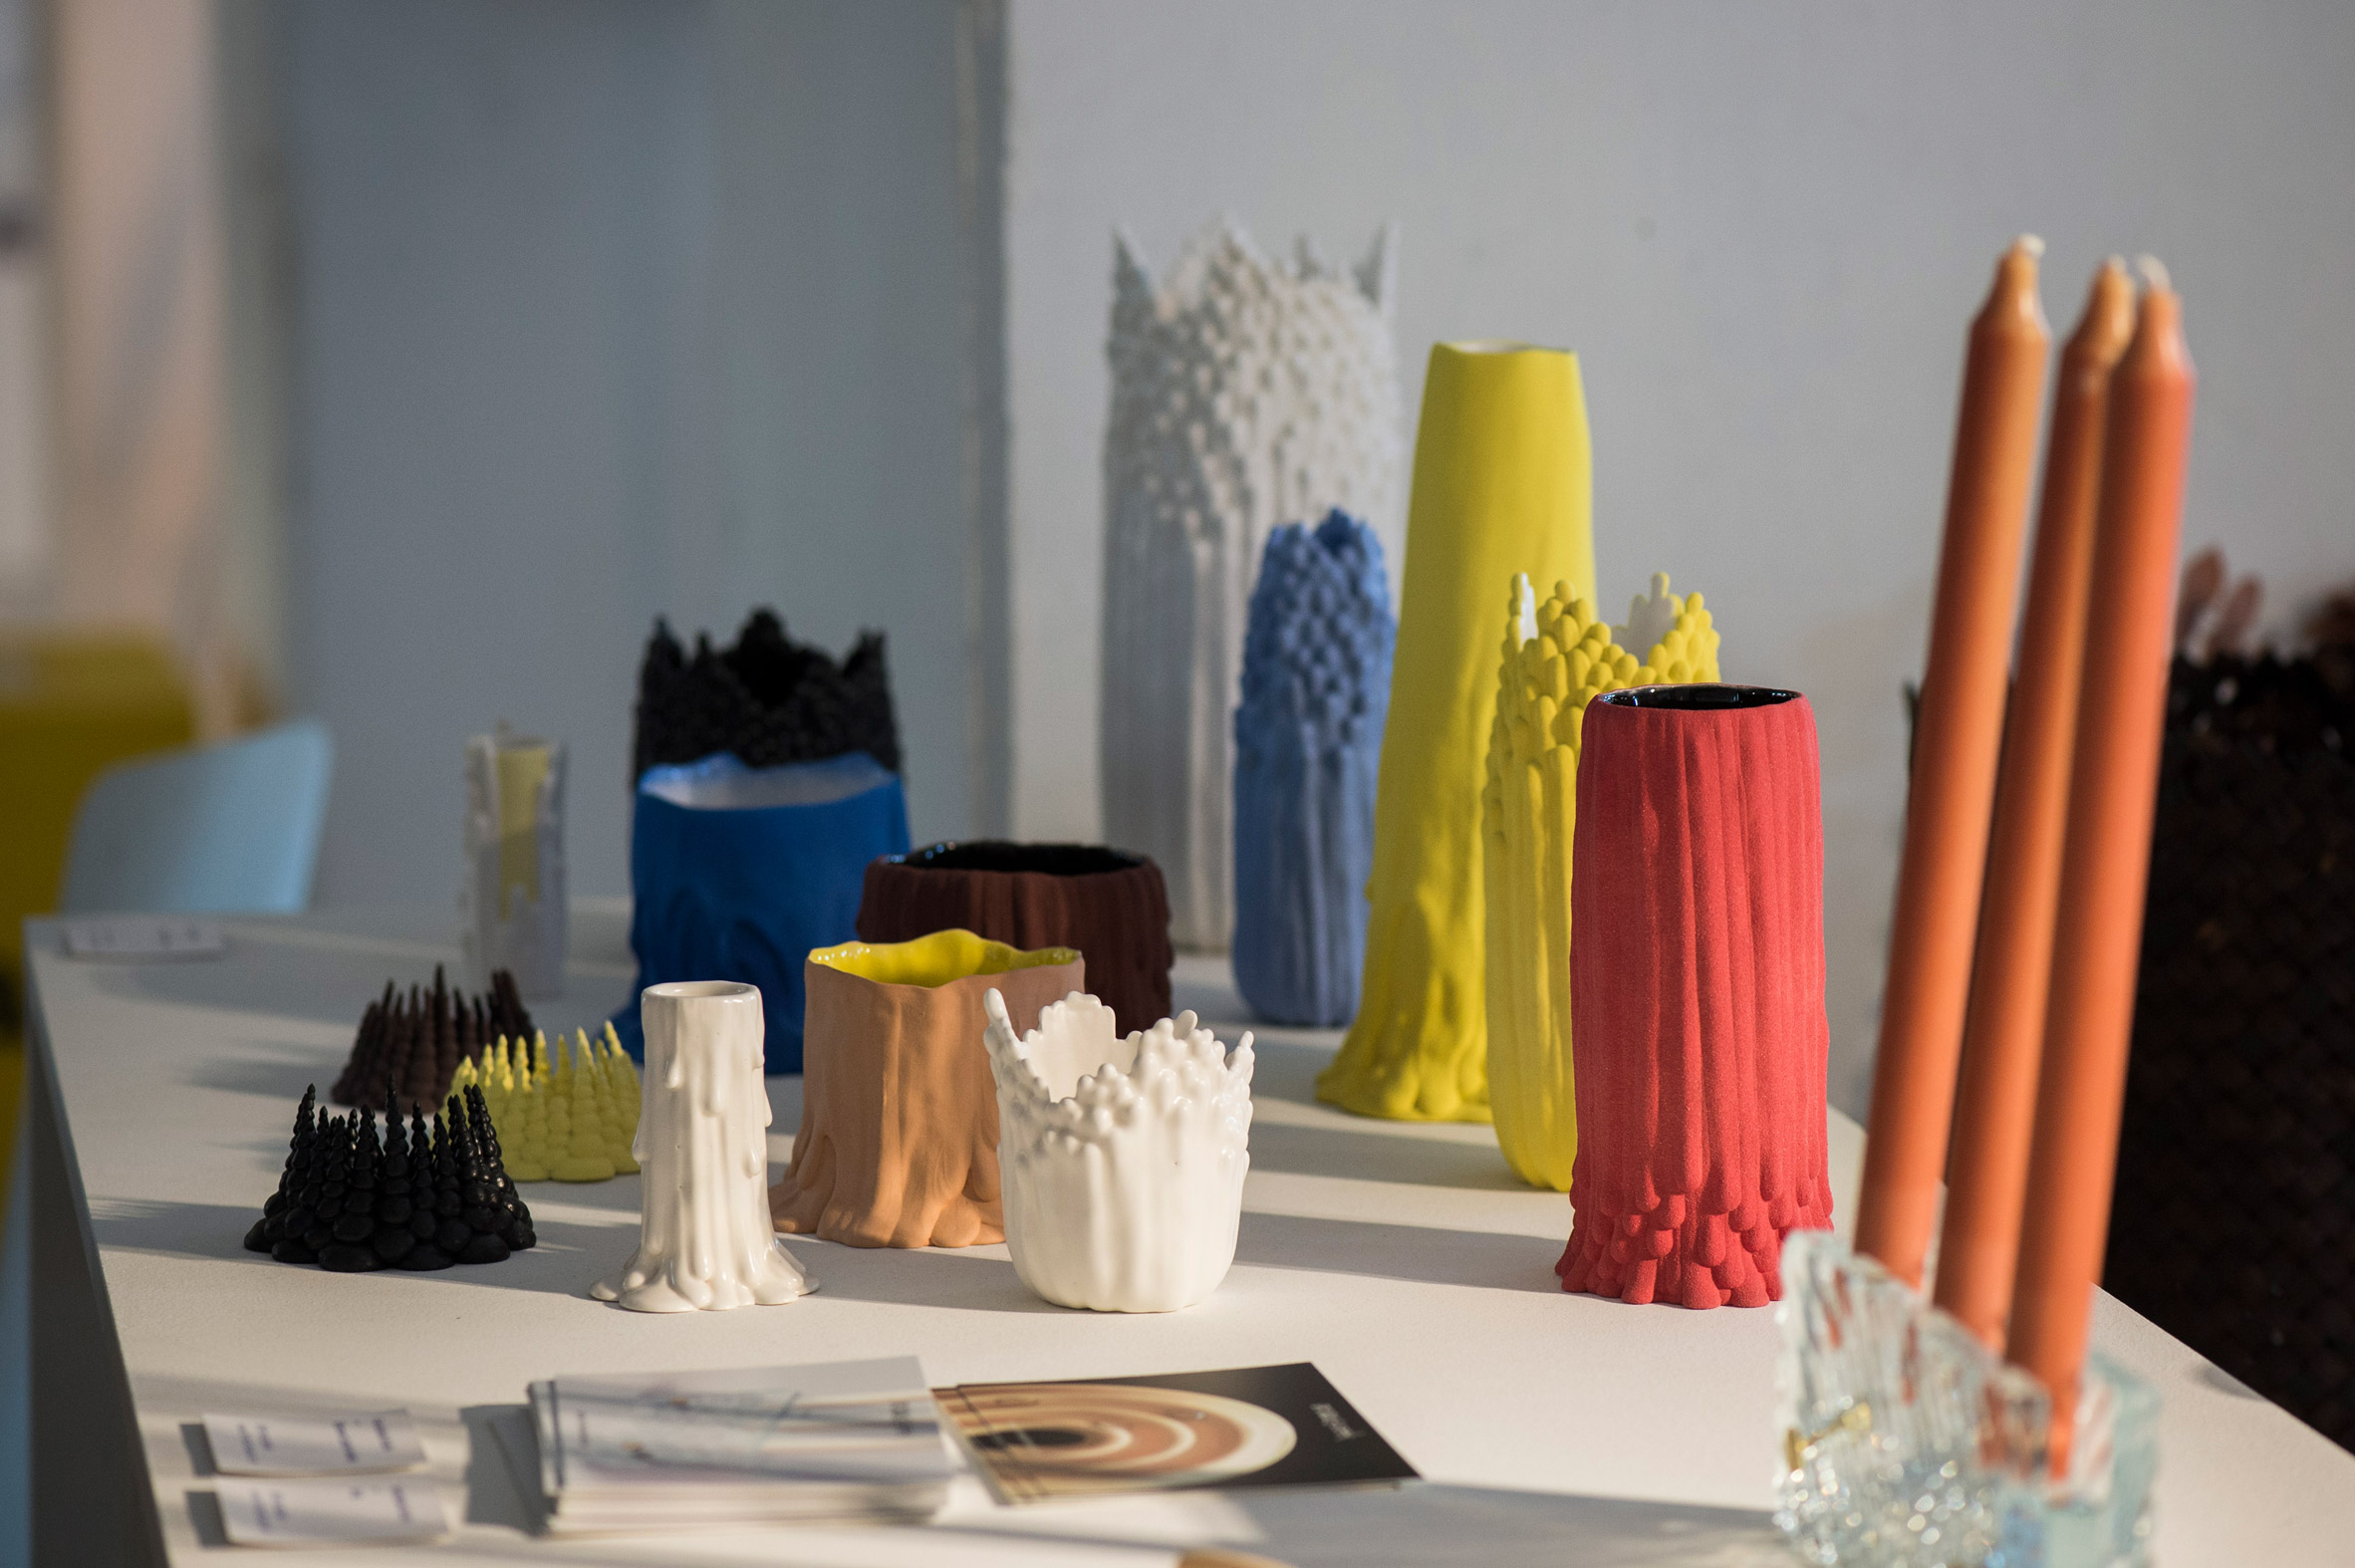 Call for entries to Ventura Future 2020 exhibition at Milan design week